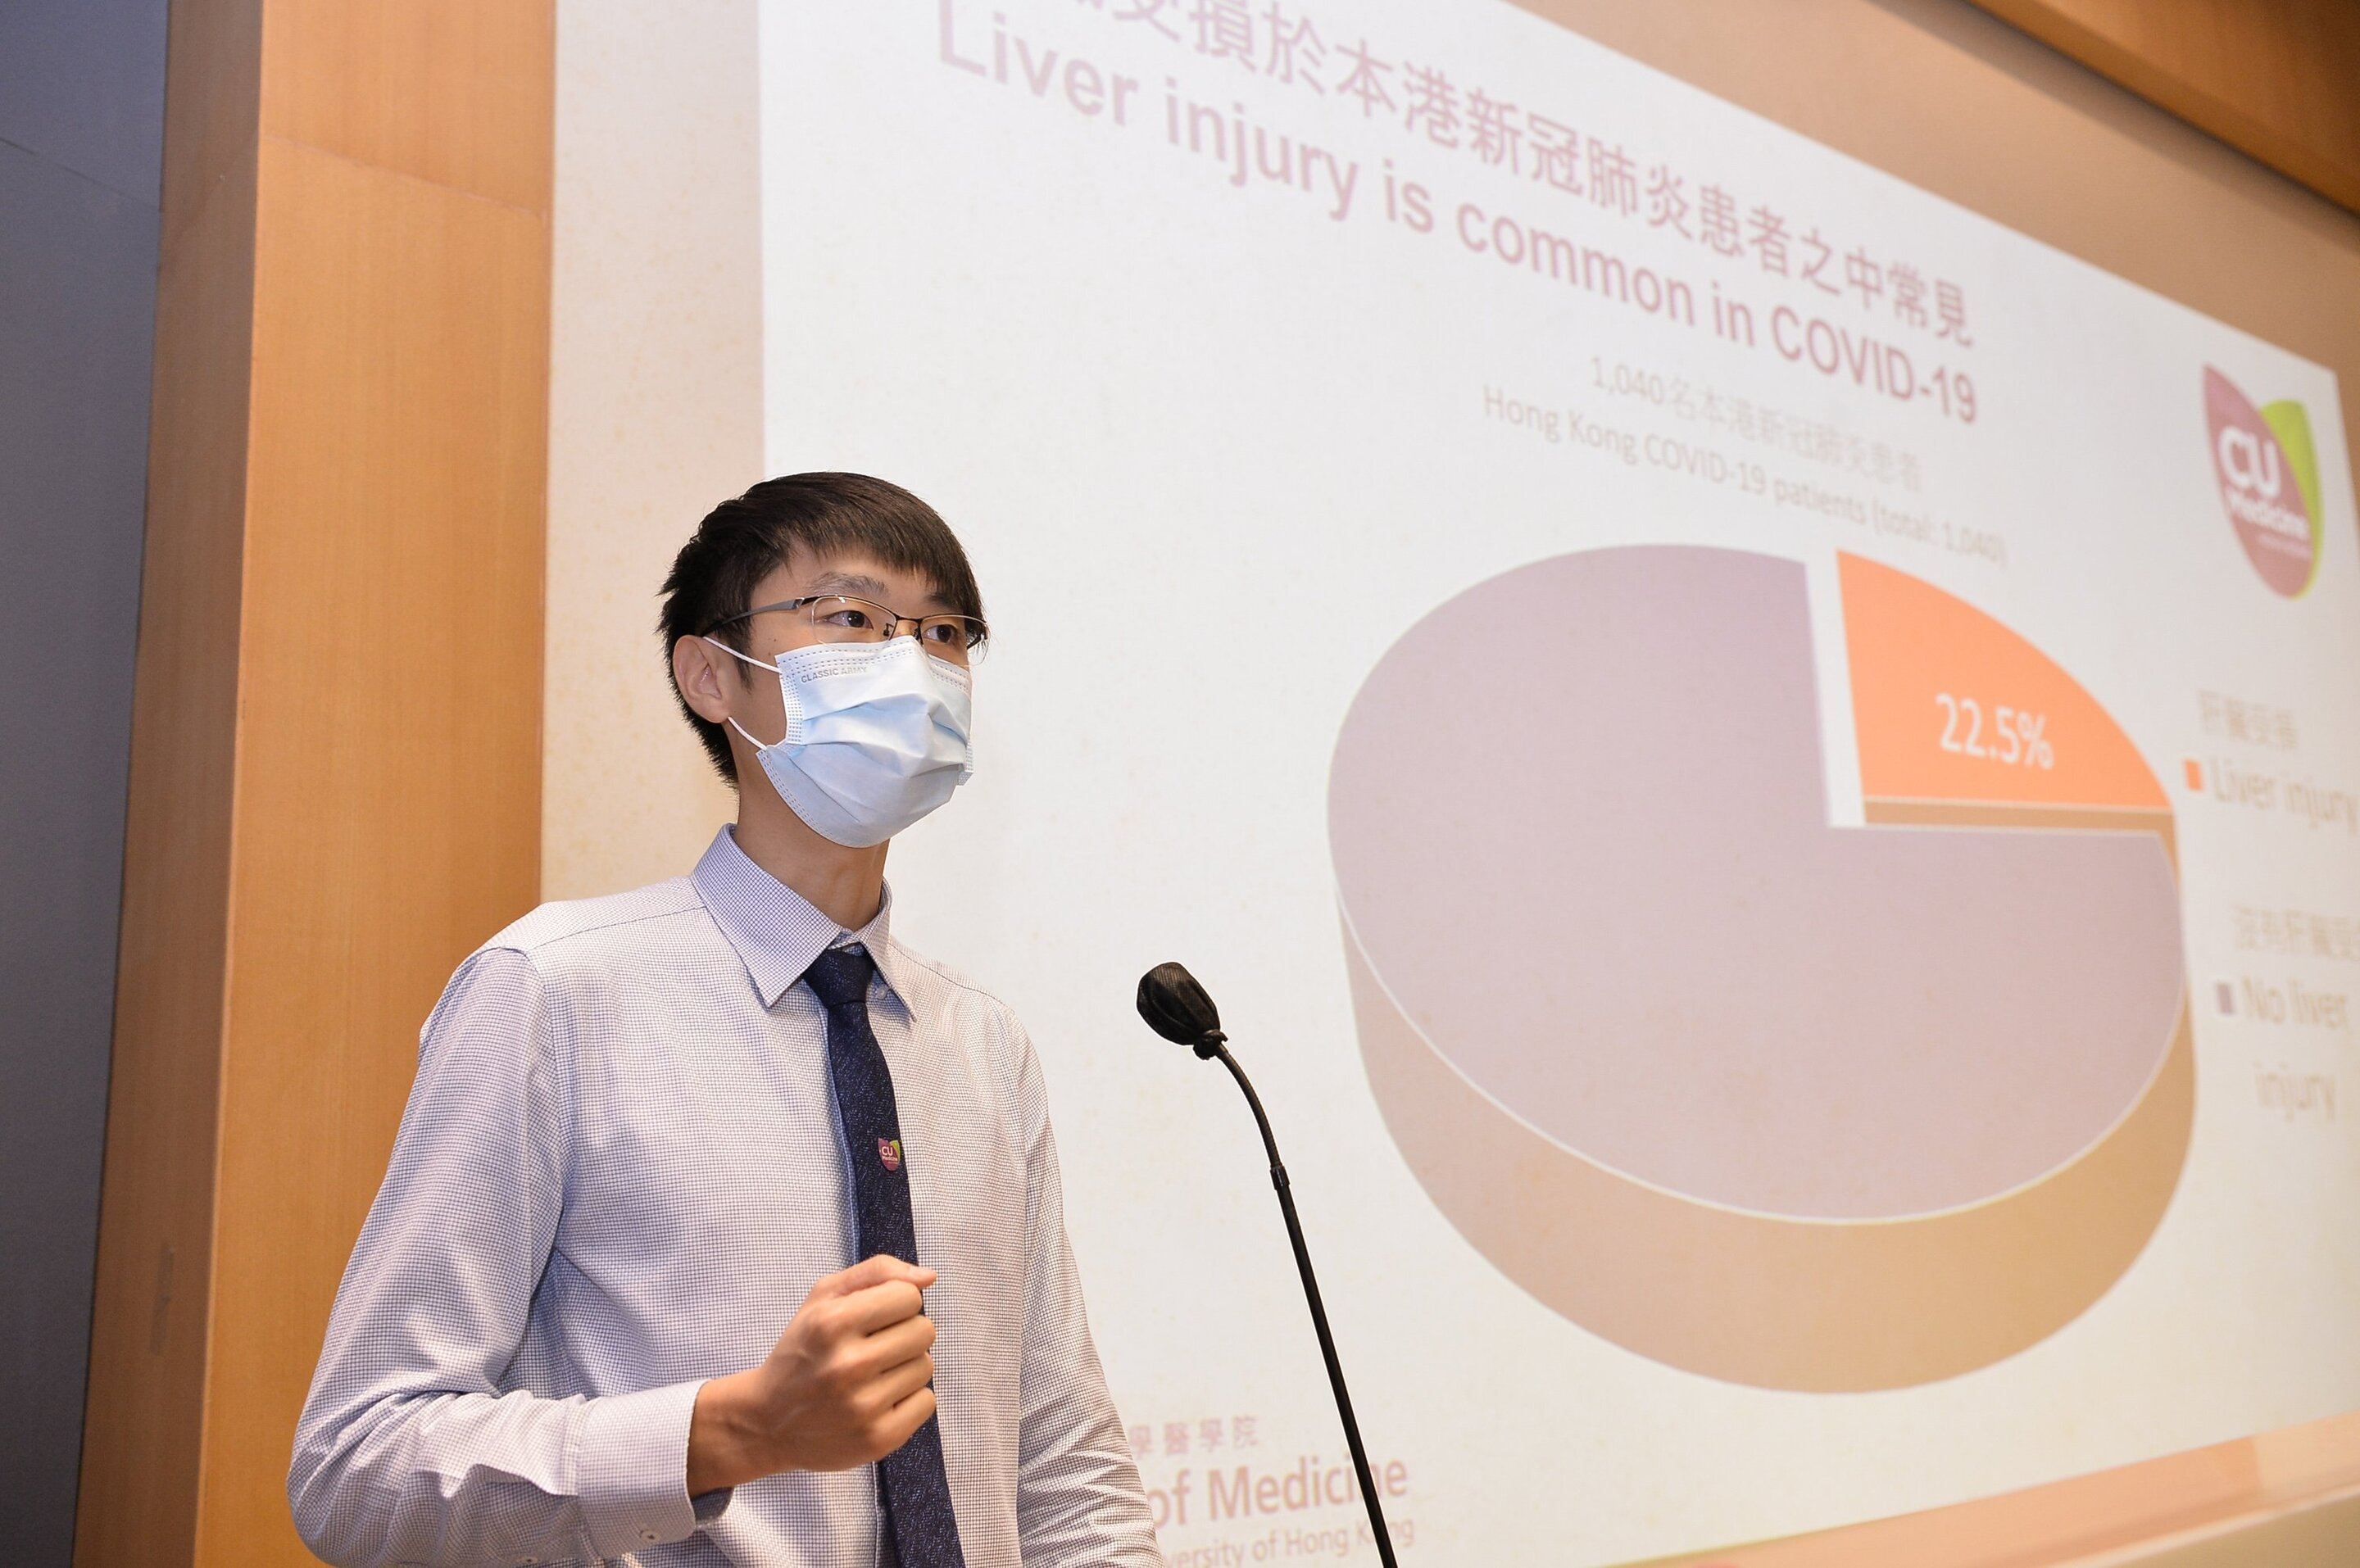 Study Shows Liver Injury Is Common And Prognostic In Covid 19 Patients